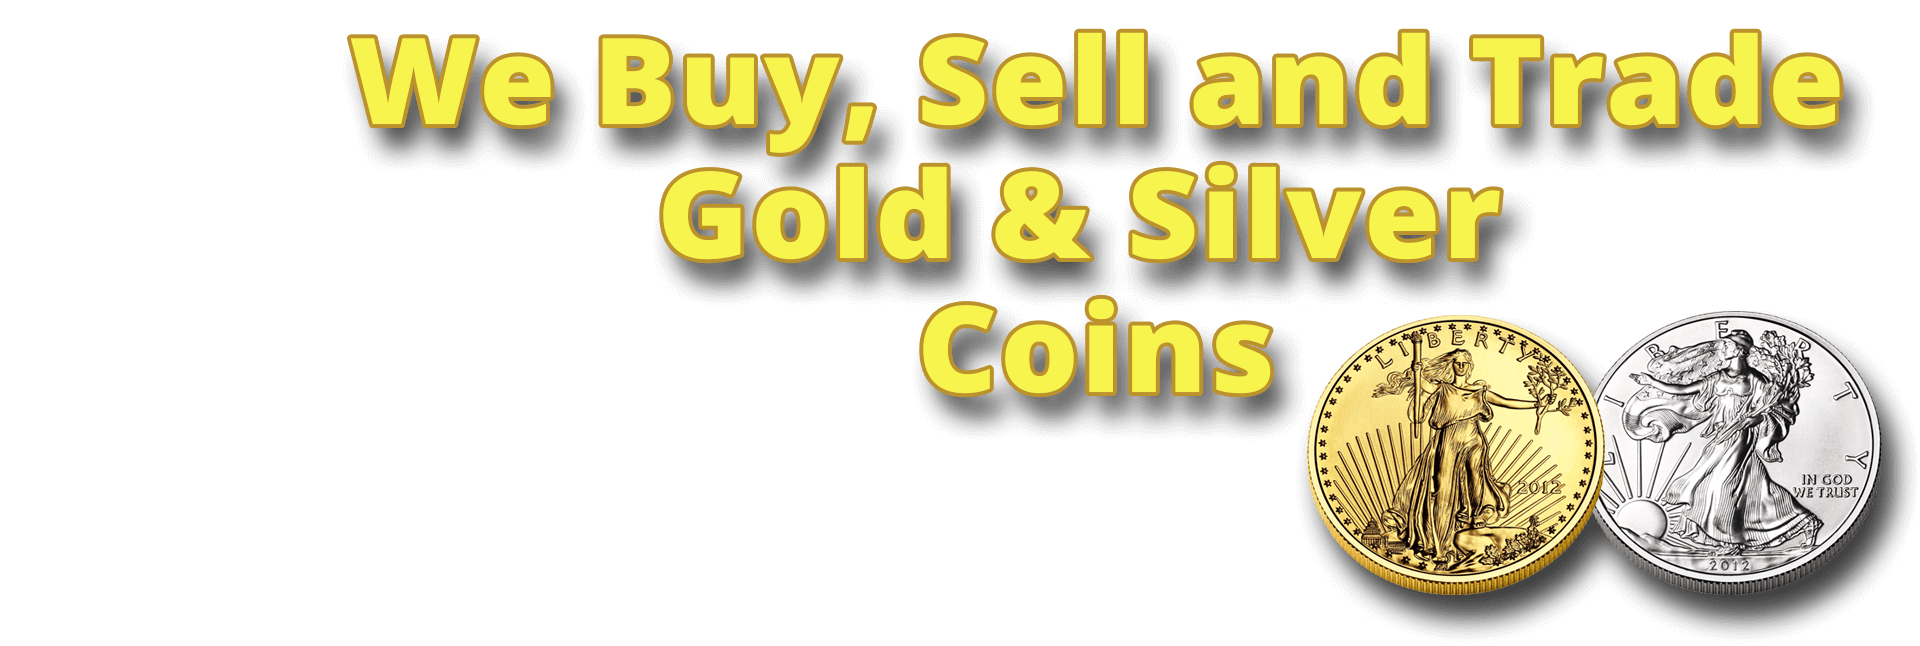 Buy and Sell Gold and Silver Coins